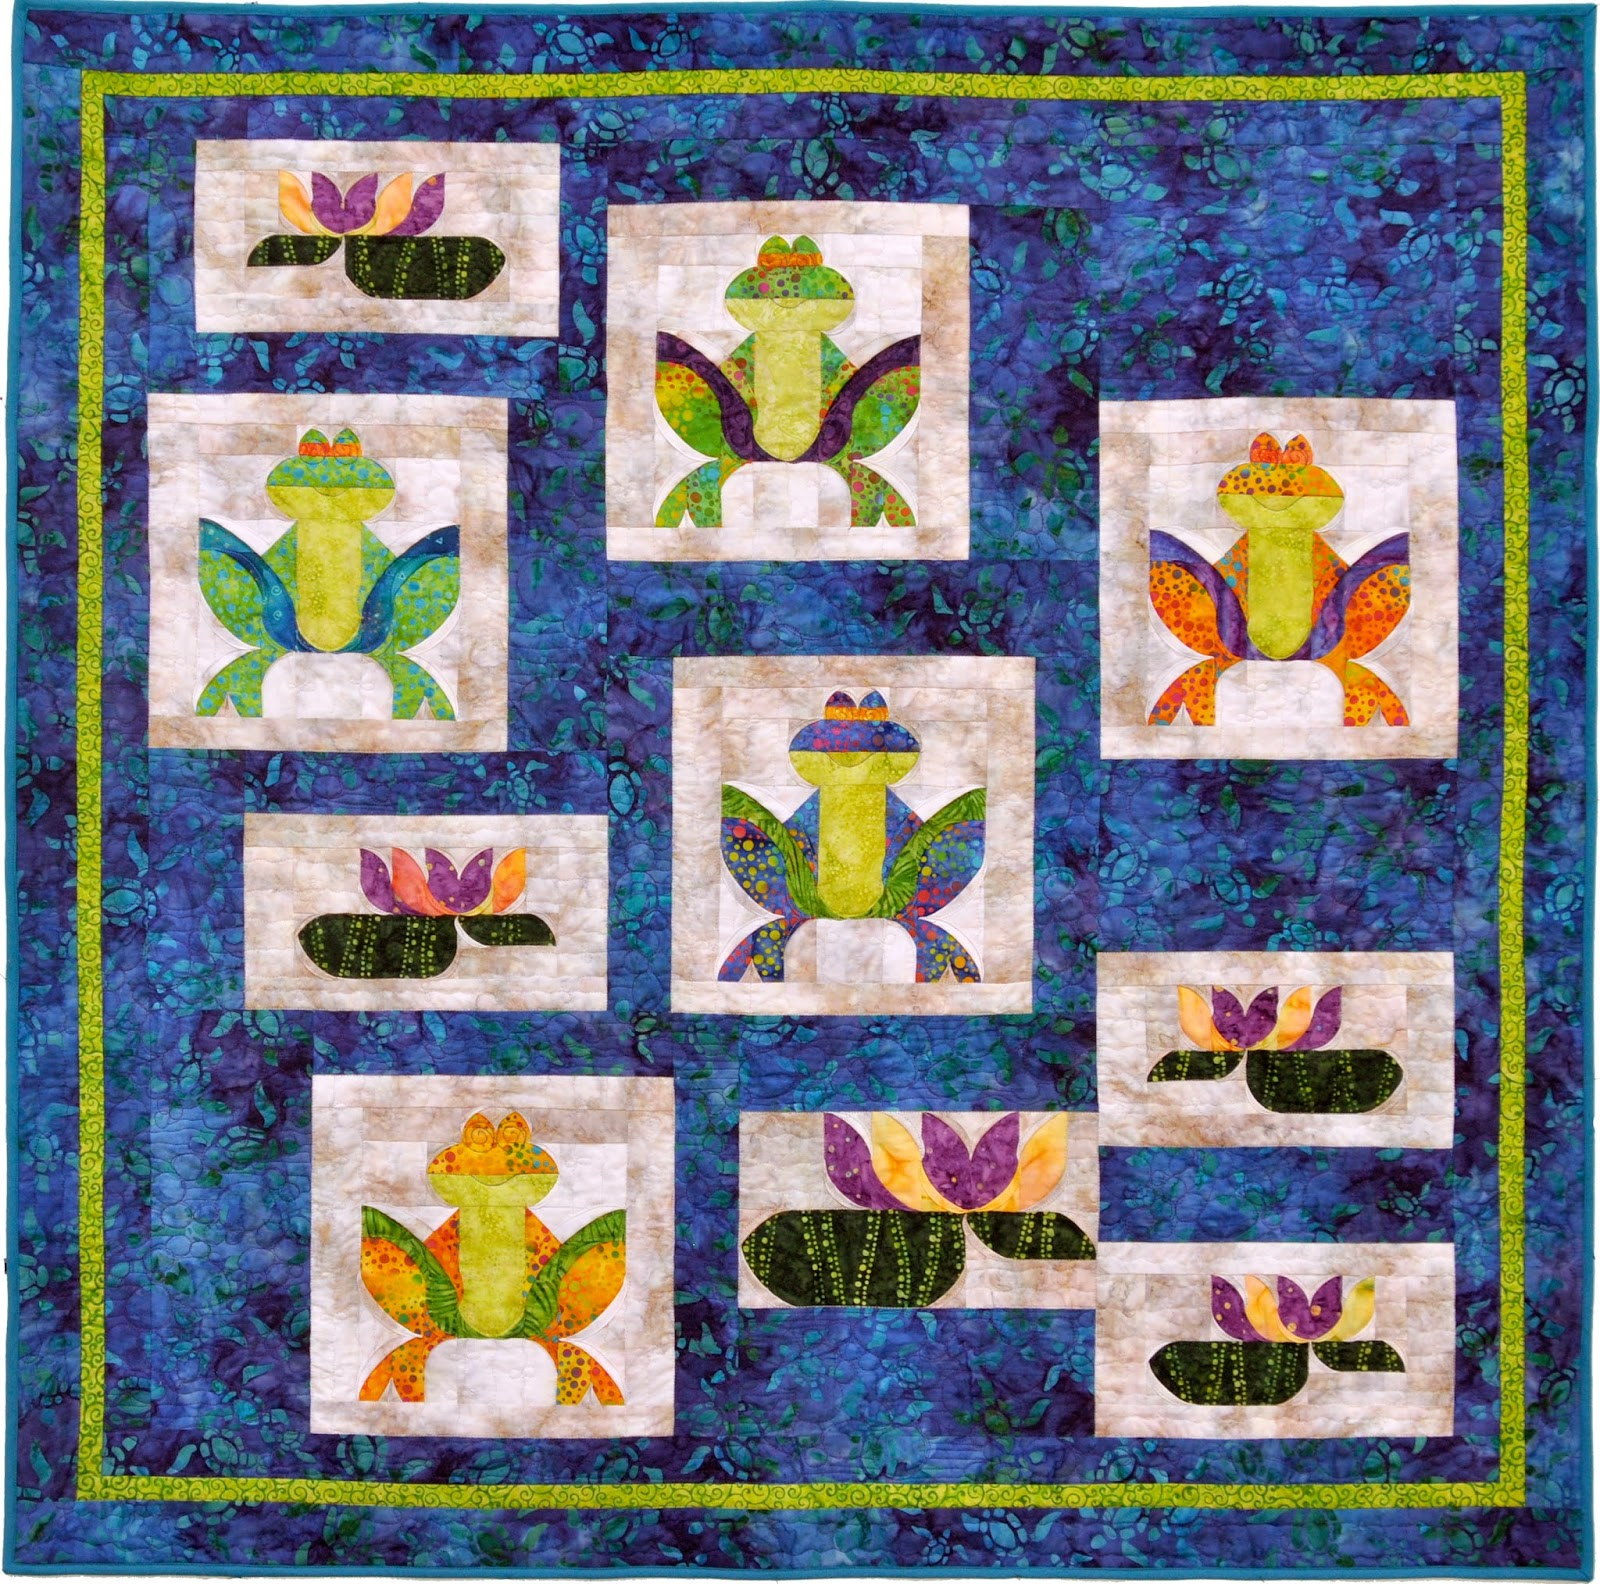 http://www.southwindquilts.com/shop/Wall-Hangings/p/Feeling-Froggy-x2364909.htm